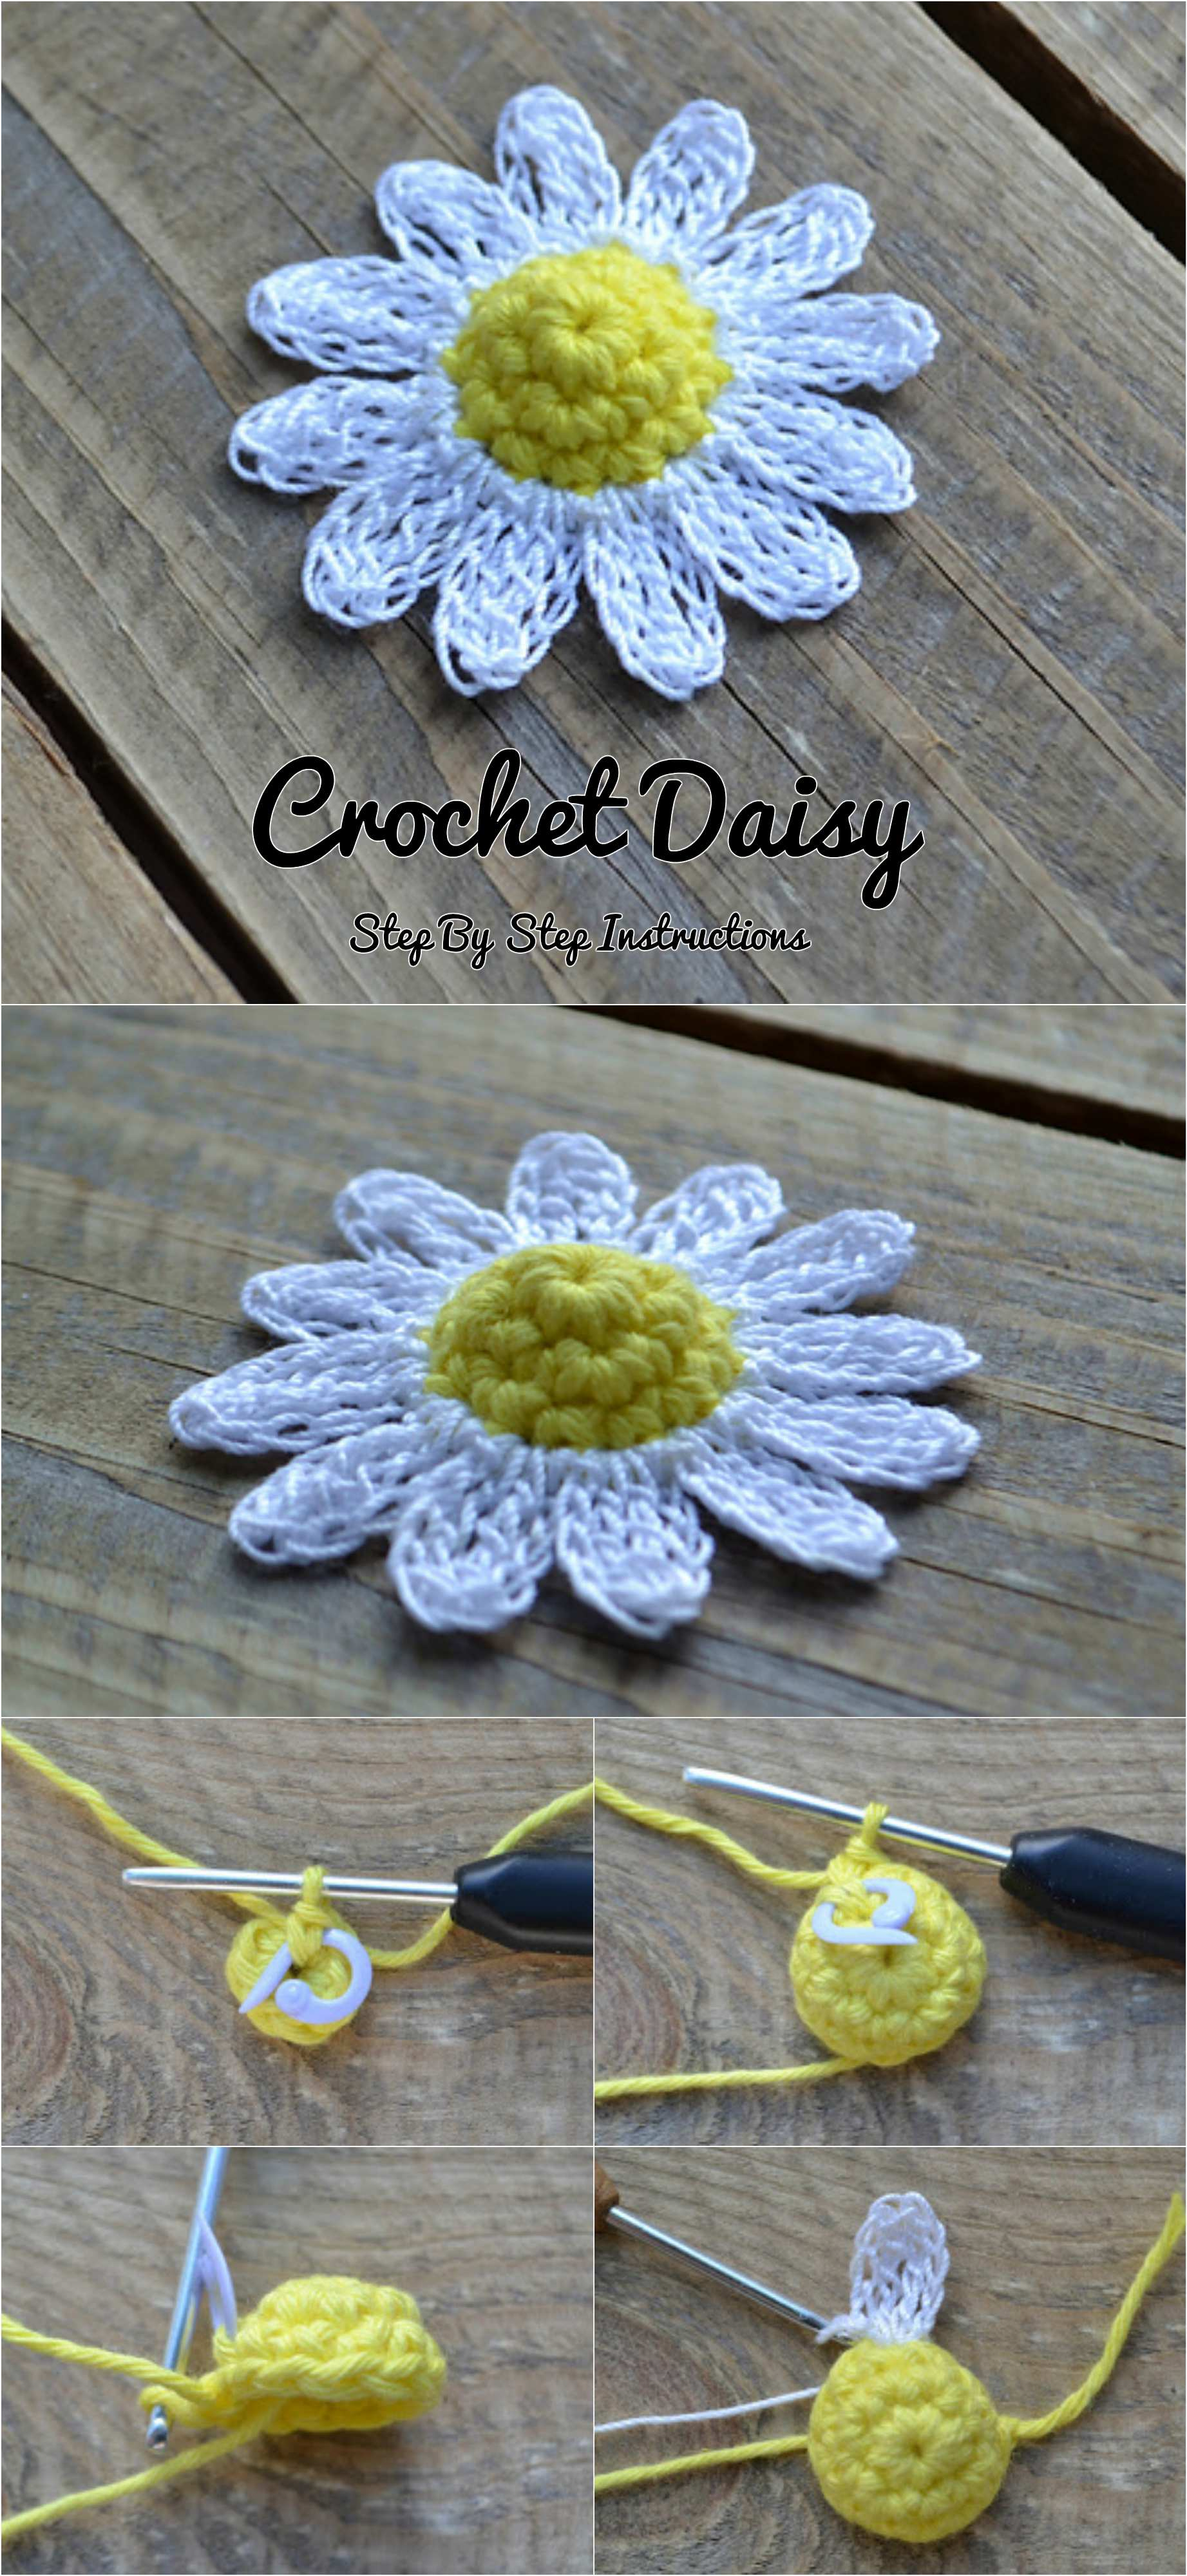 Crochet daisy flower pretty ideas in these instructions you will everything step by step that you need to know to crochet such as lovely daisy flower izmirmasajfo